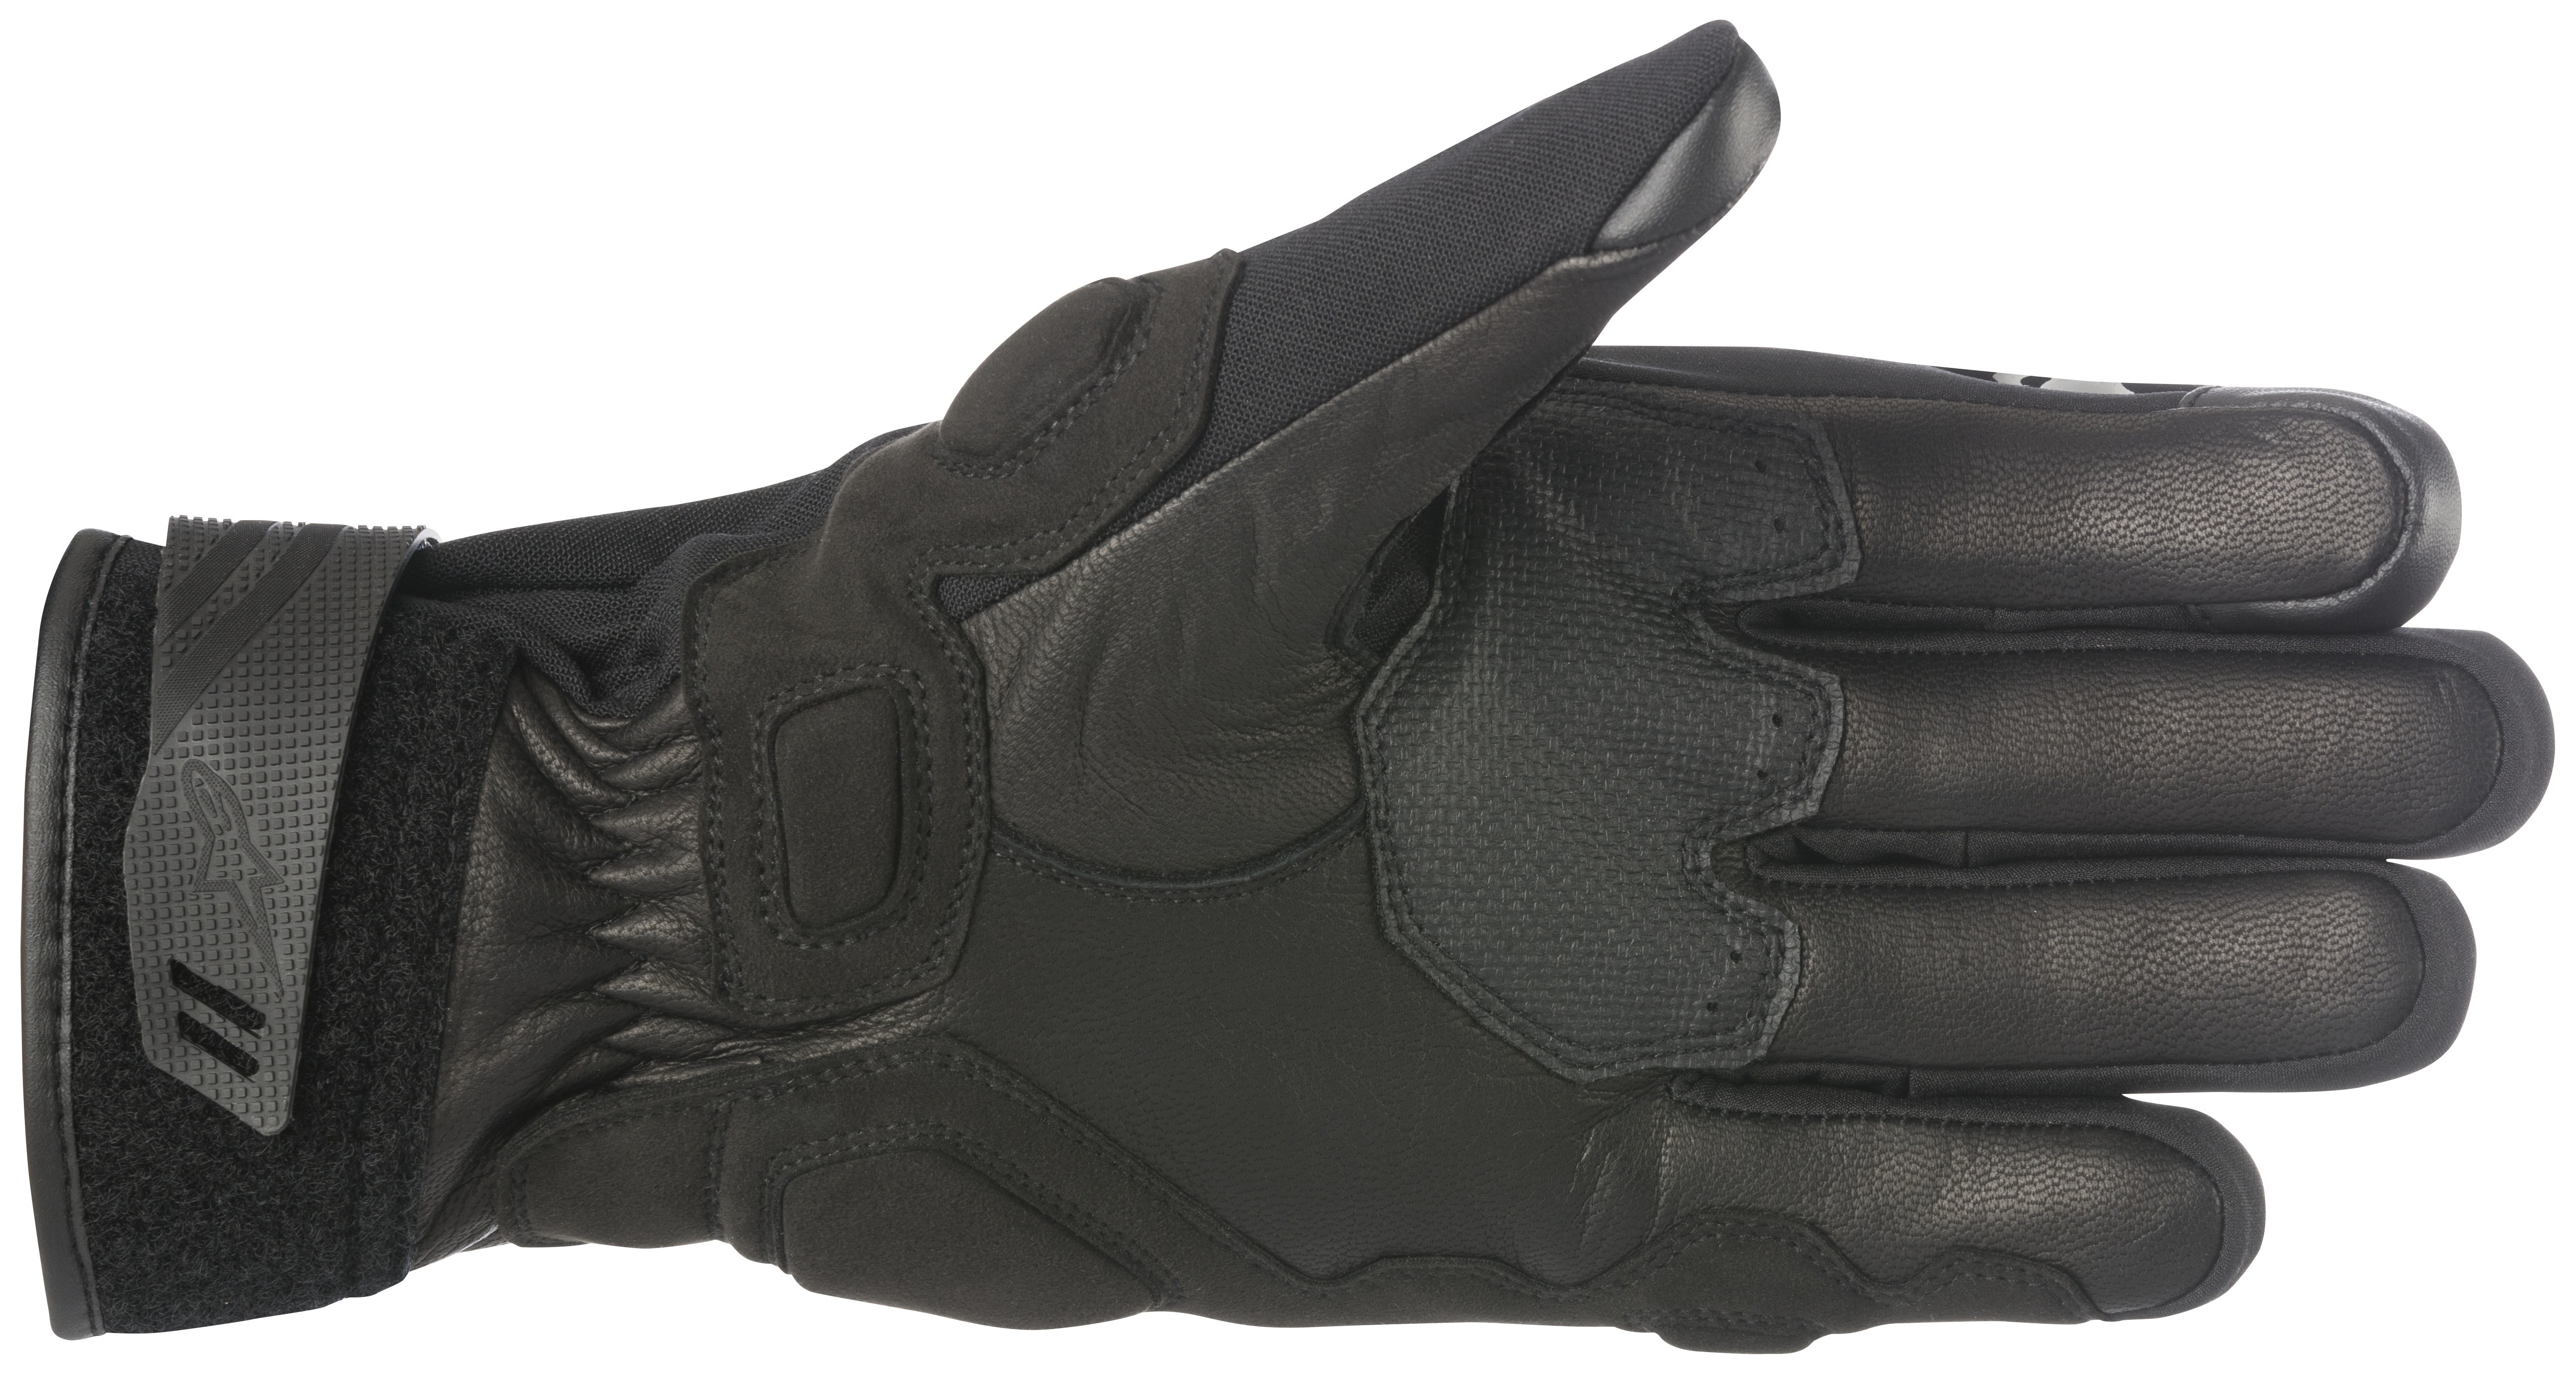 Gloves Vehicle Clothing, Helmets & Protection Alpinestars Motorcycle Motorbike Equinox Outdry All Weather Riding Gloves Black